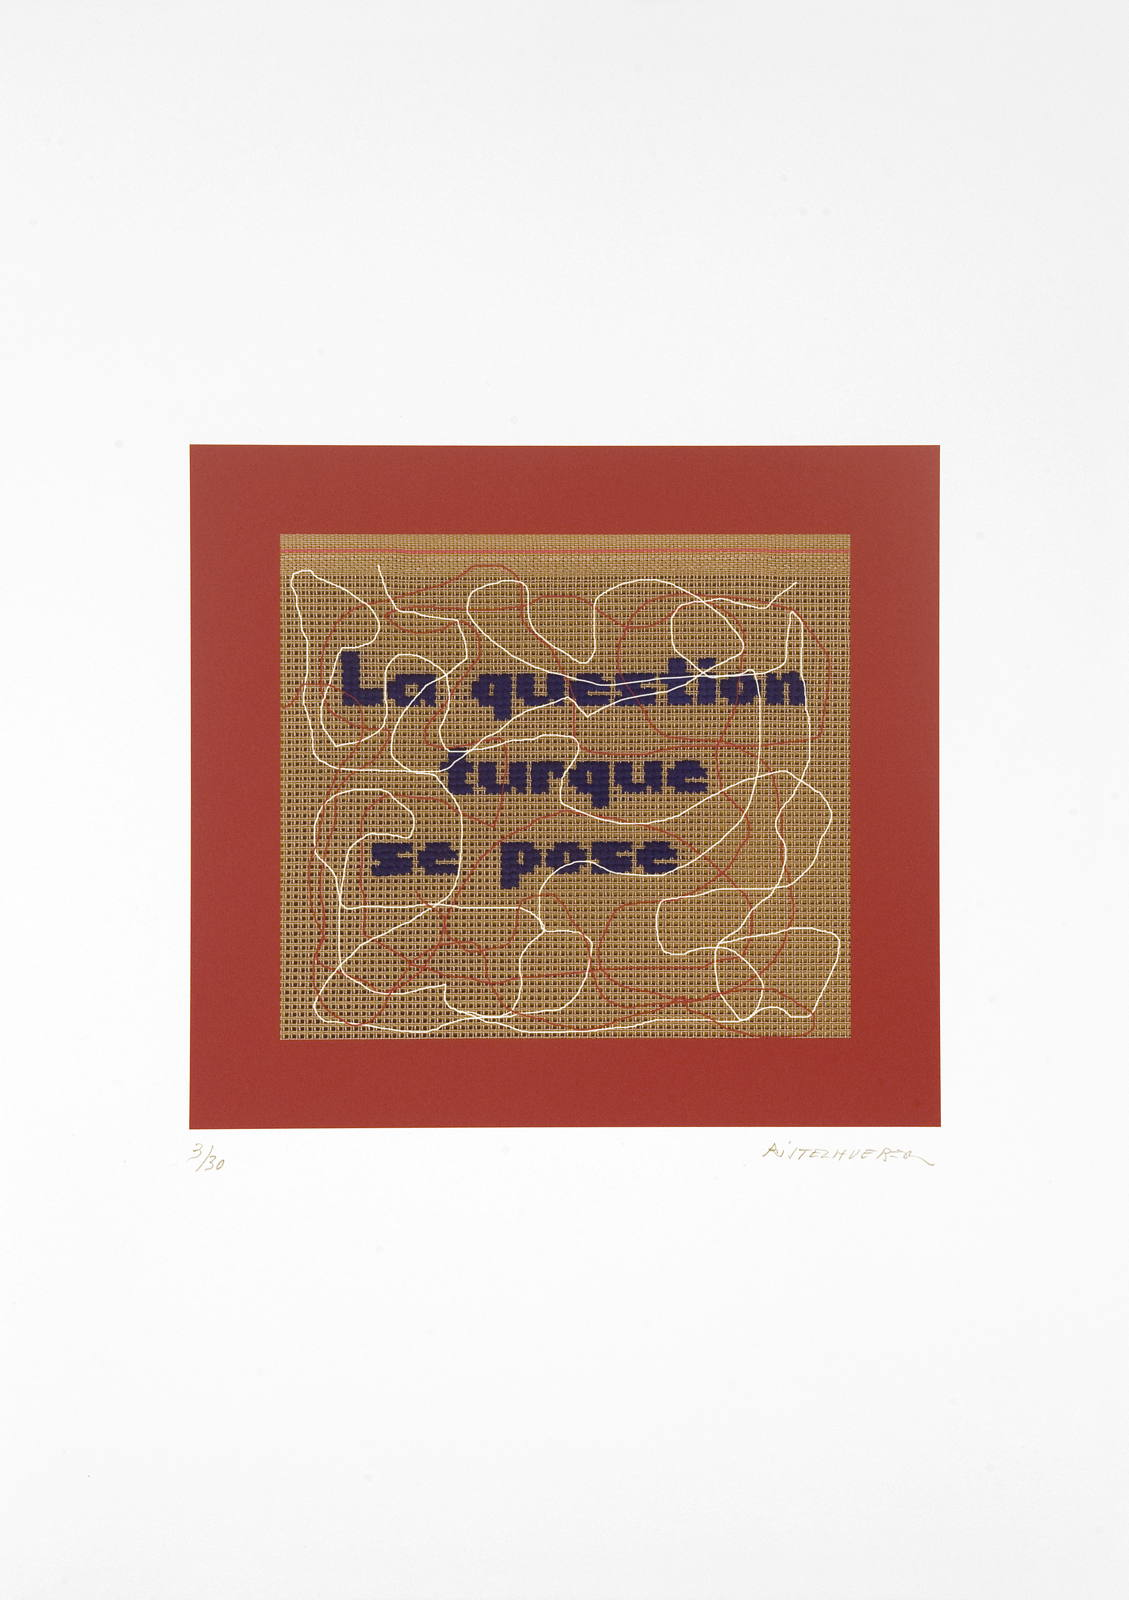 La question turque se pose, 2013